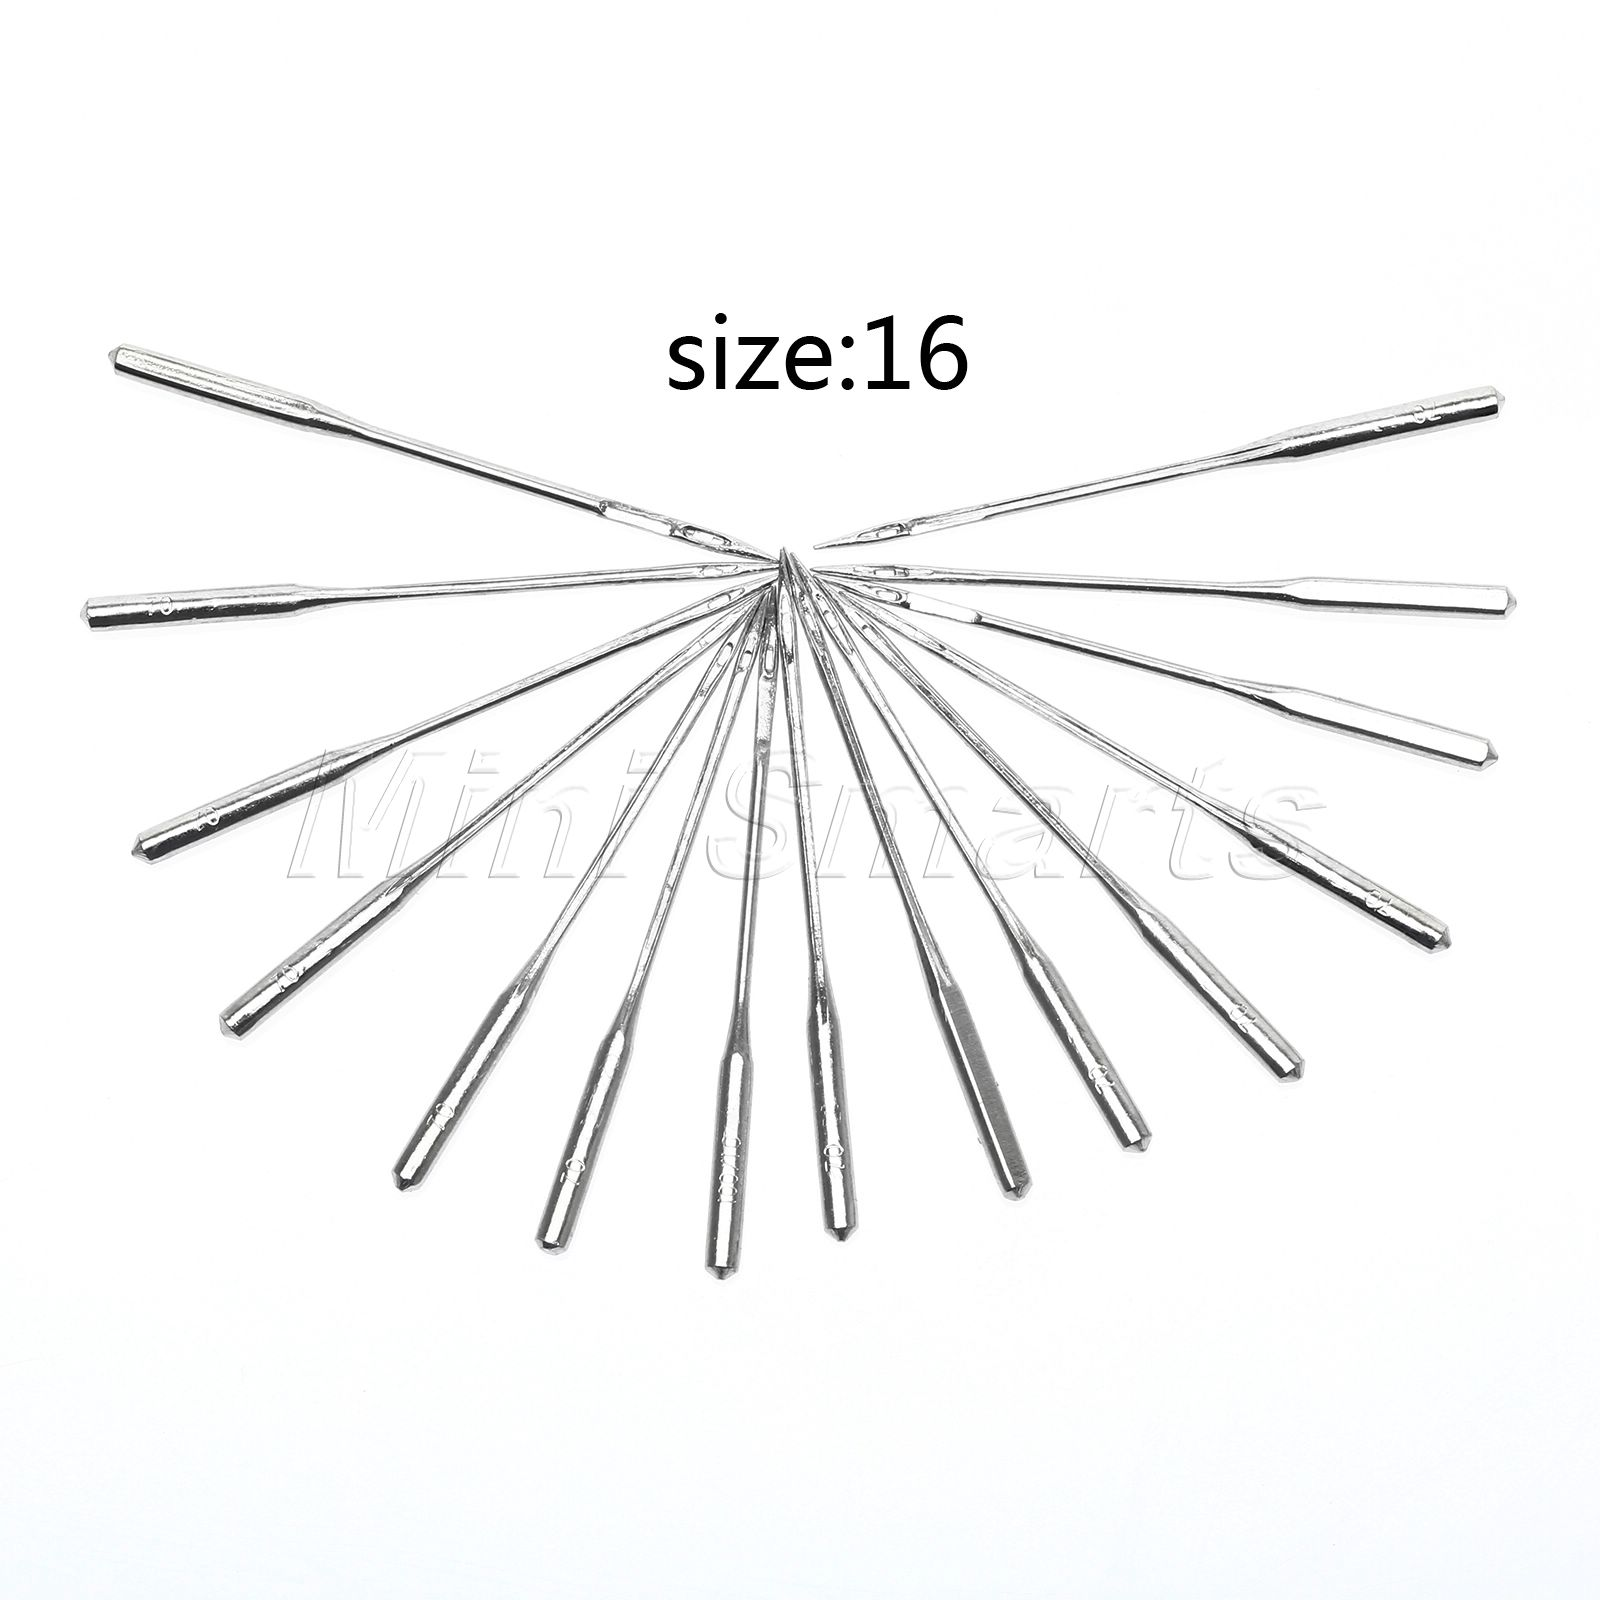 10pcs Lot Size 100 16 Metal Craft Tools Accessary Home Sewing Machine Threading Diagram Needles Fit Slightly Thicker Cloth In From Garden On